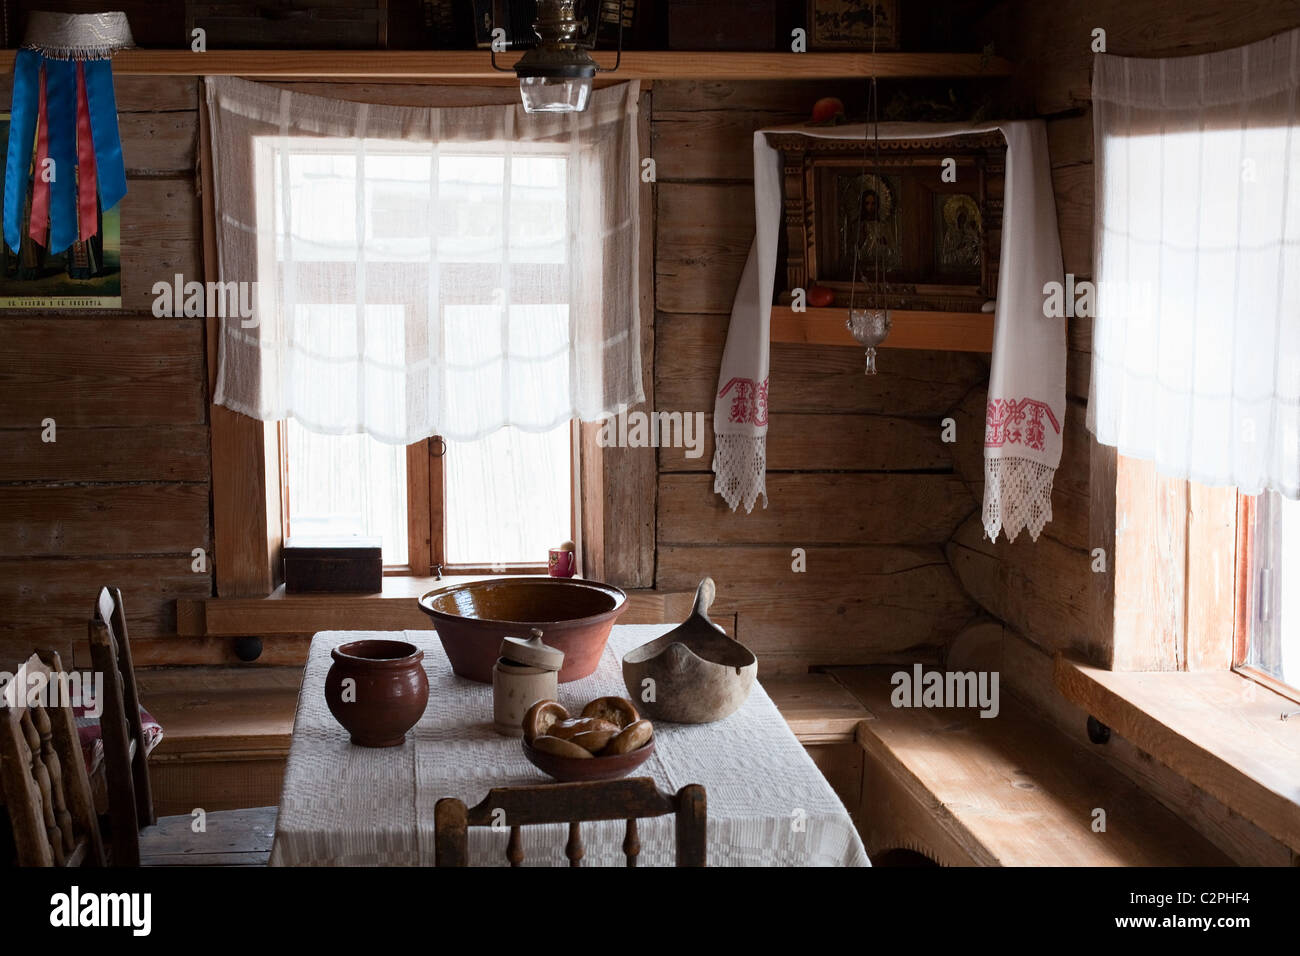 Russian domestic room in ancient wooden house. Museum interior - Stock Image